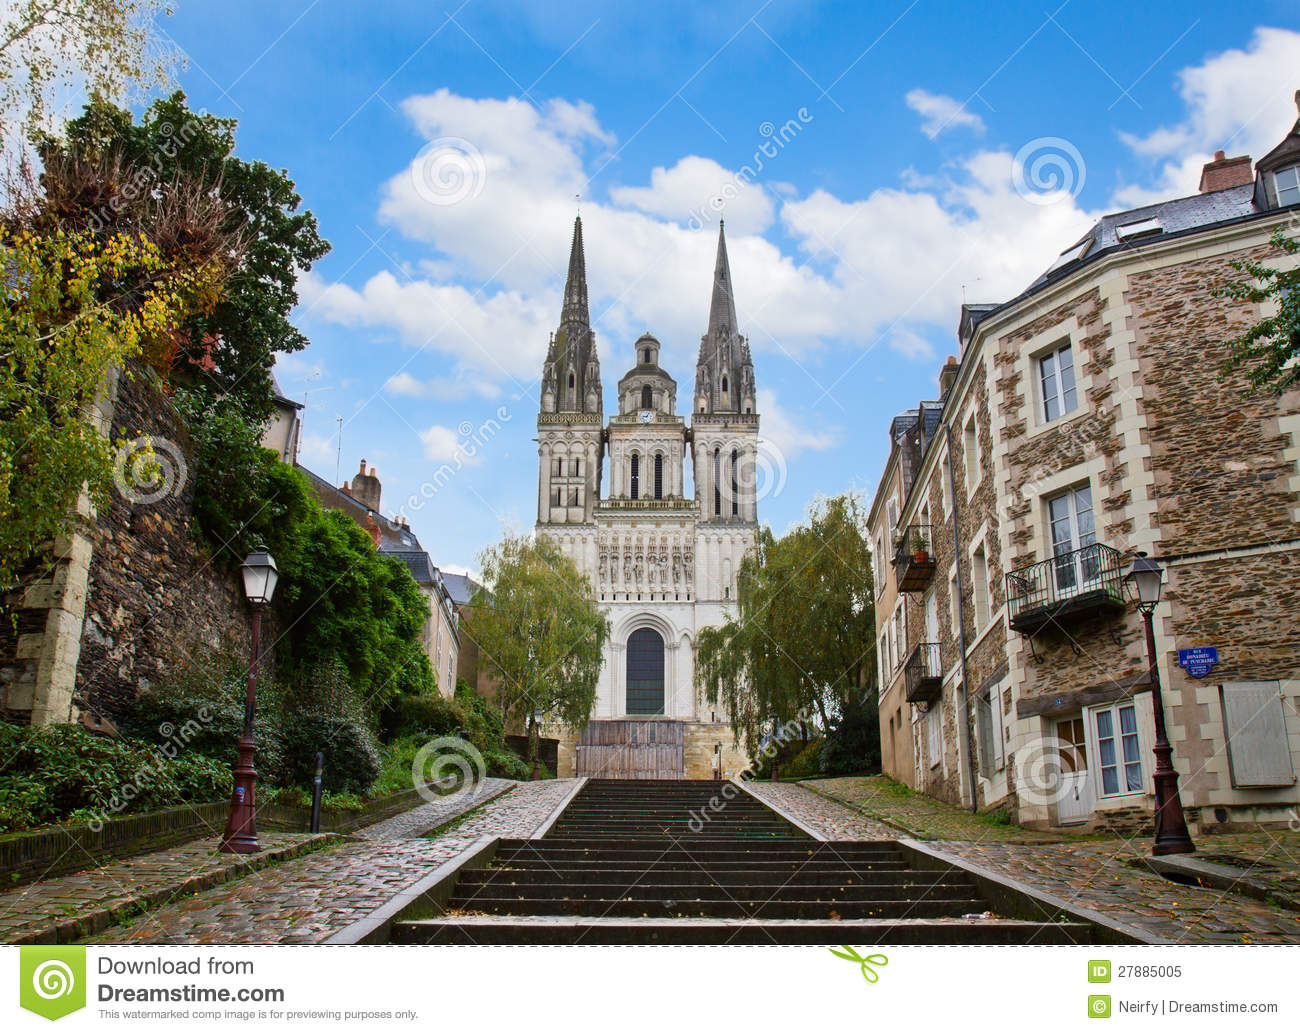 Saint-Maurice France  city photos gallery : St Maurice Cathedral, Angers, France Royalty Free Stock Photo Image ...